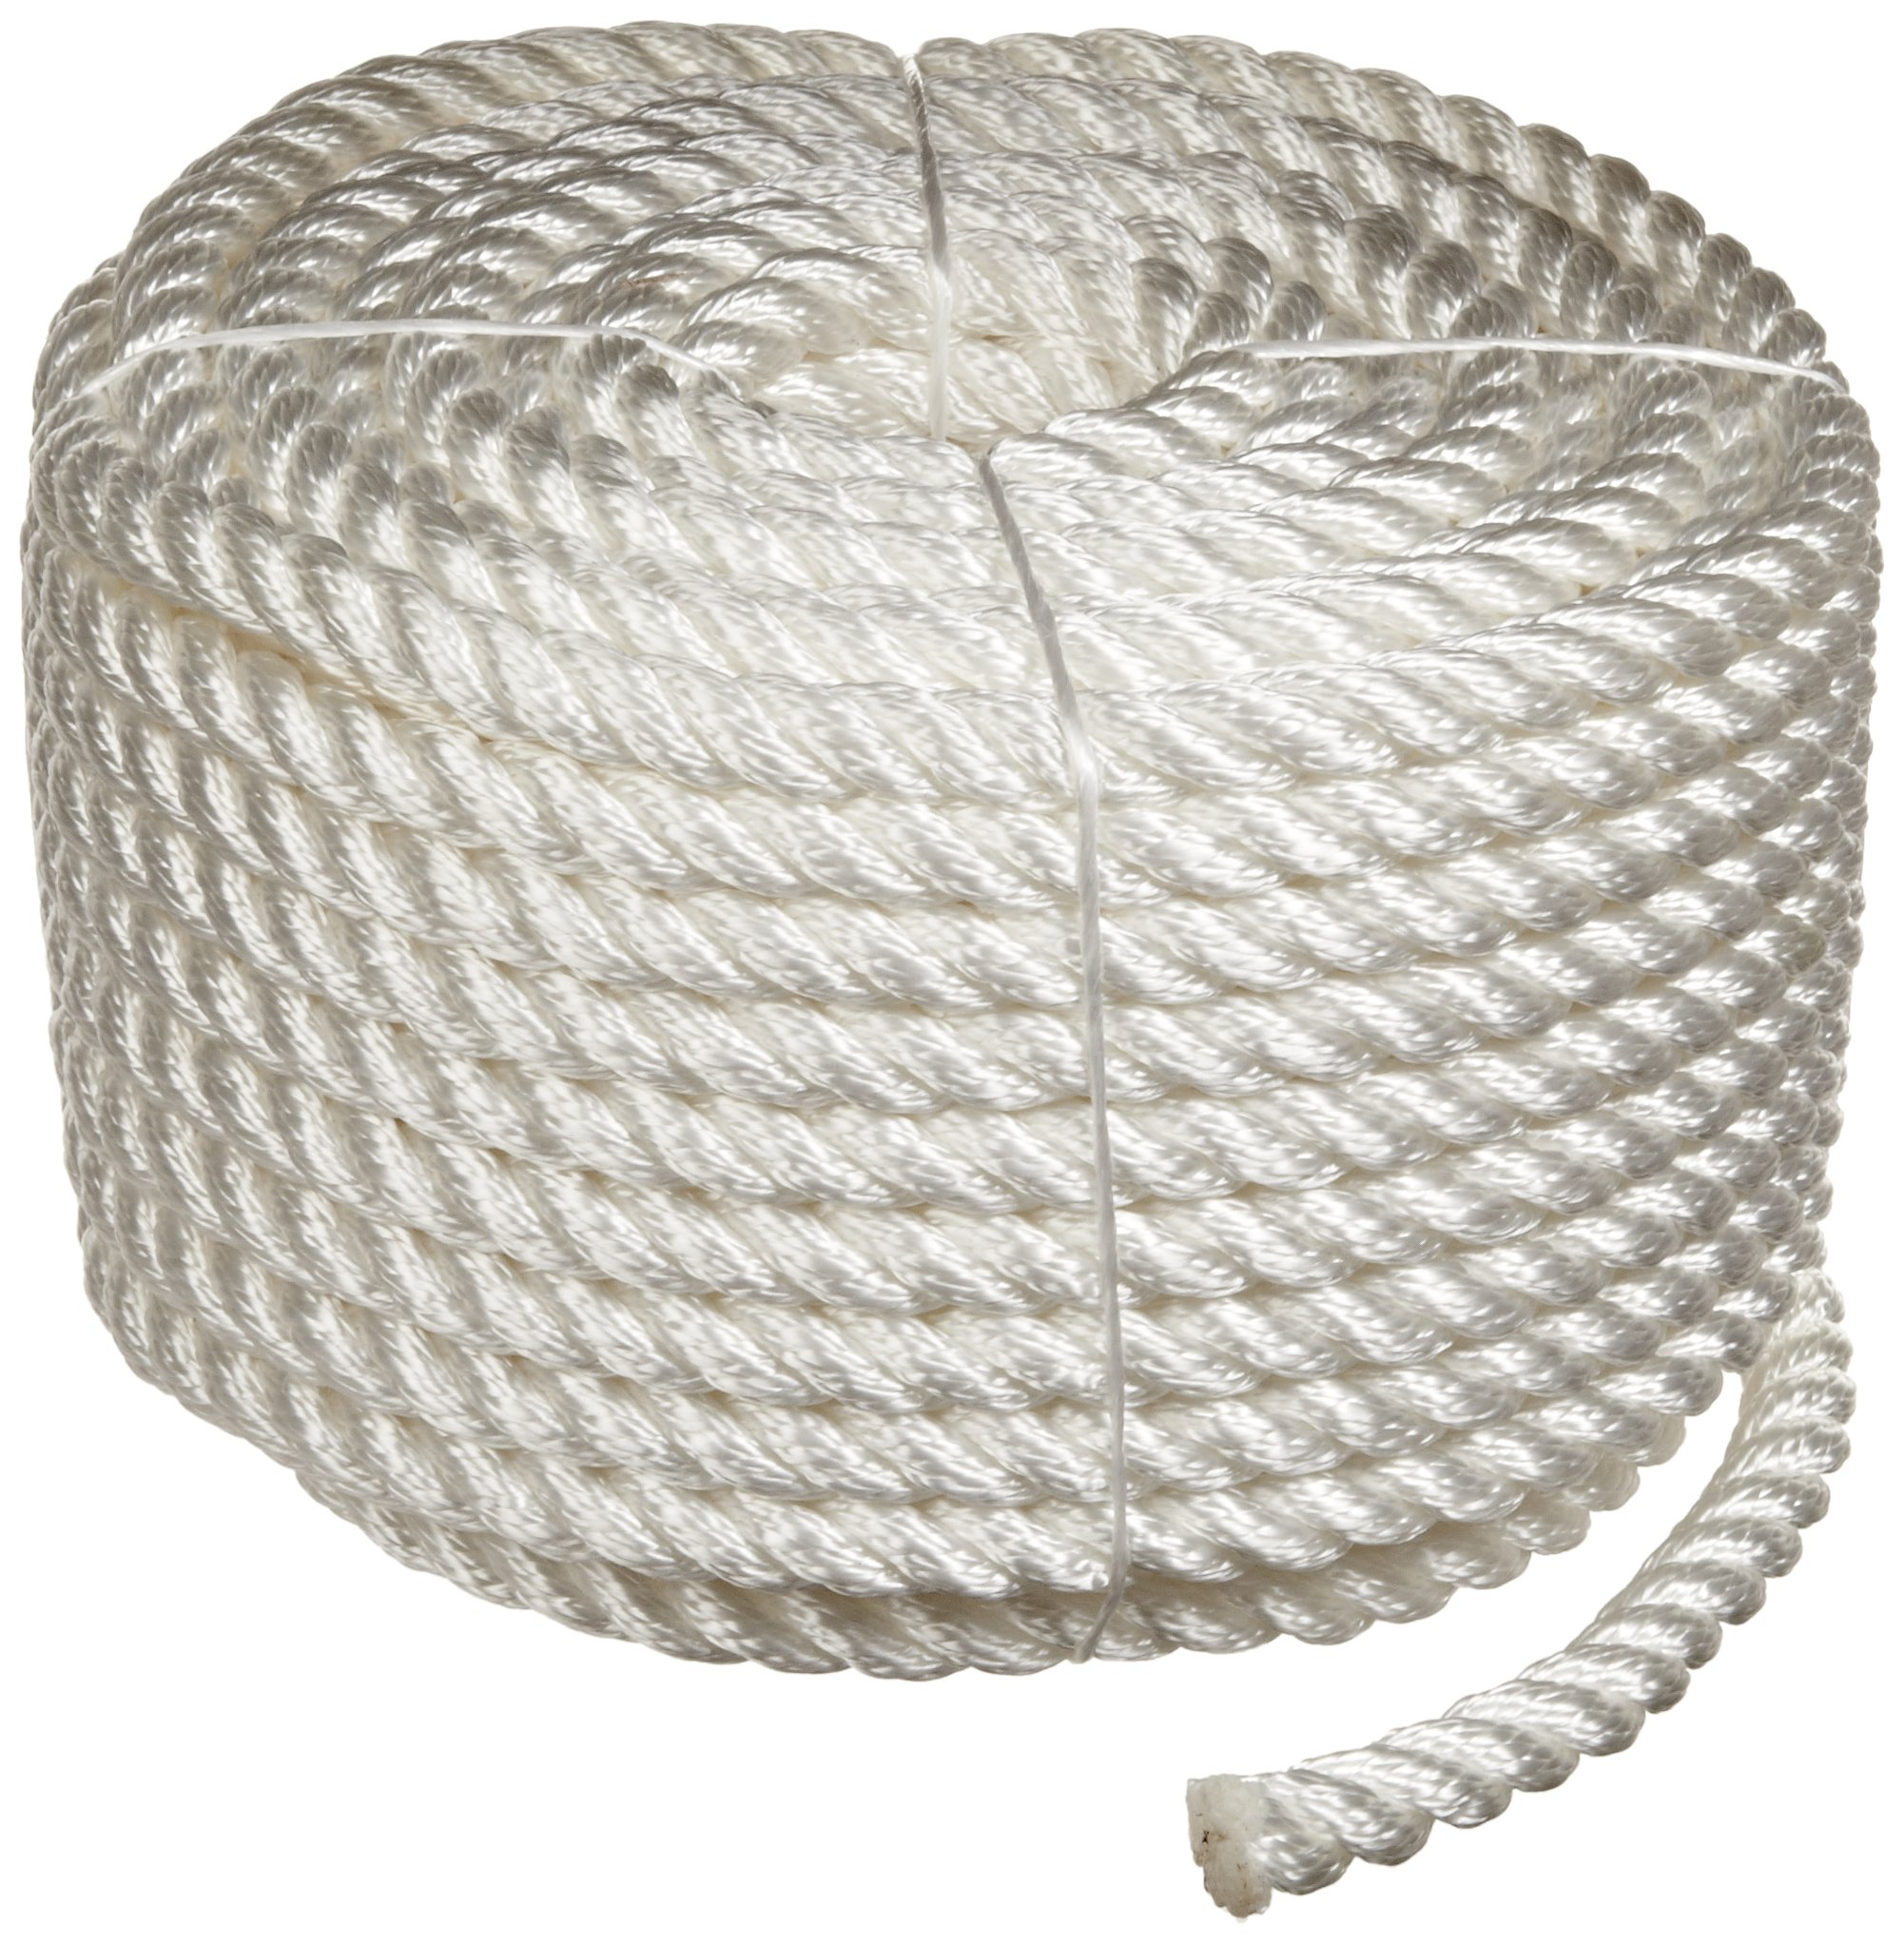 Rope King TN-12100 Twisted Nylon Rope Coil 1/2 inch x 100 feet